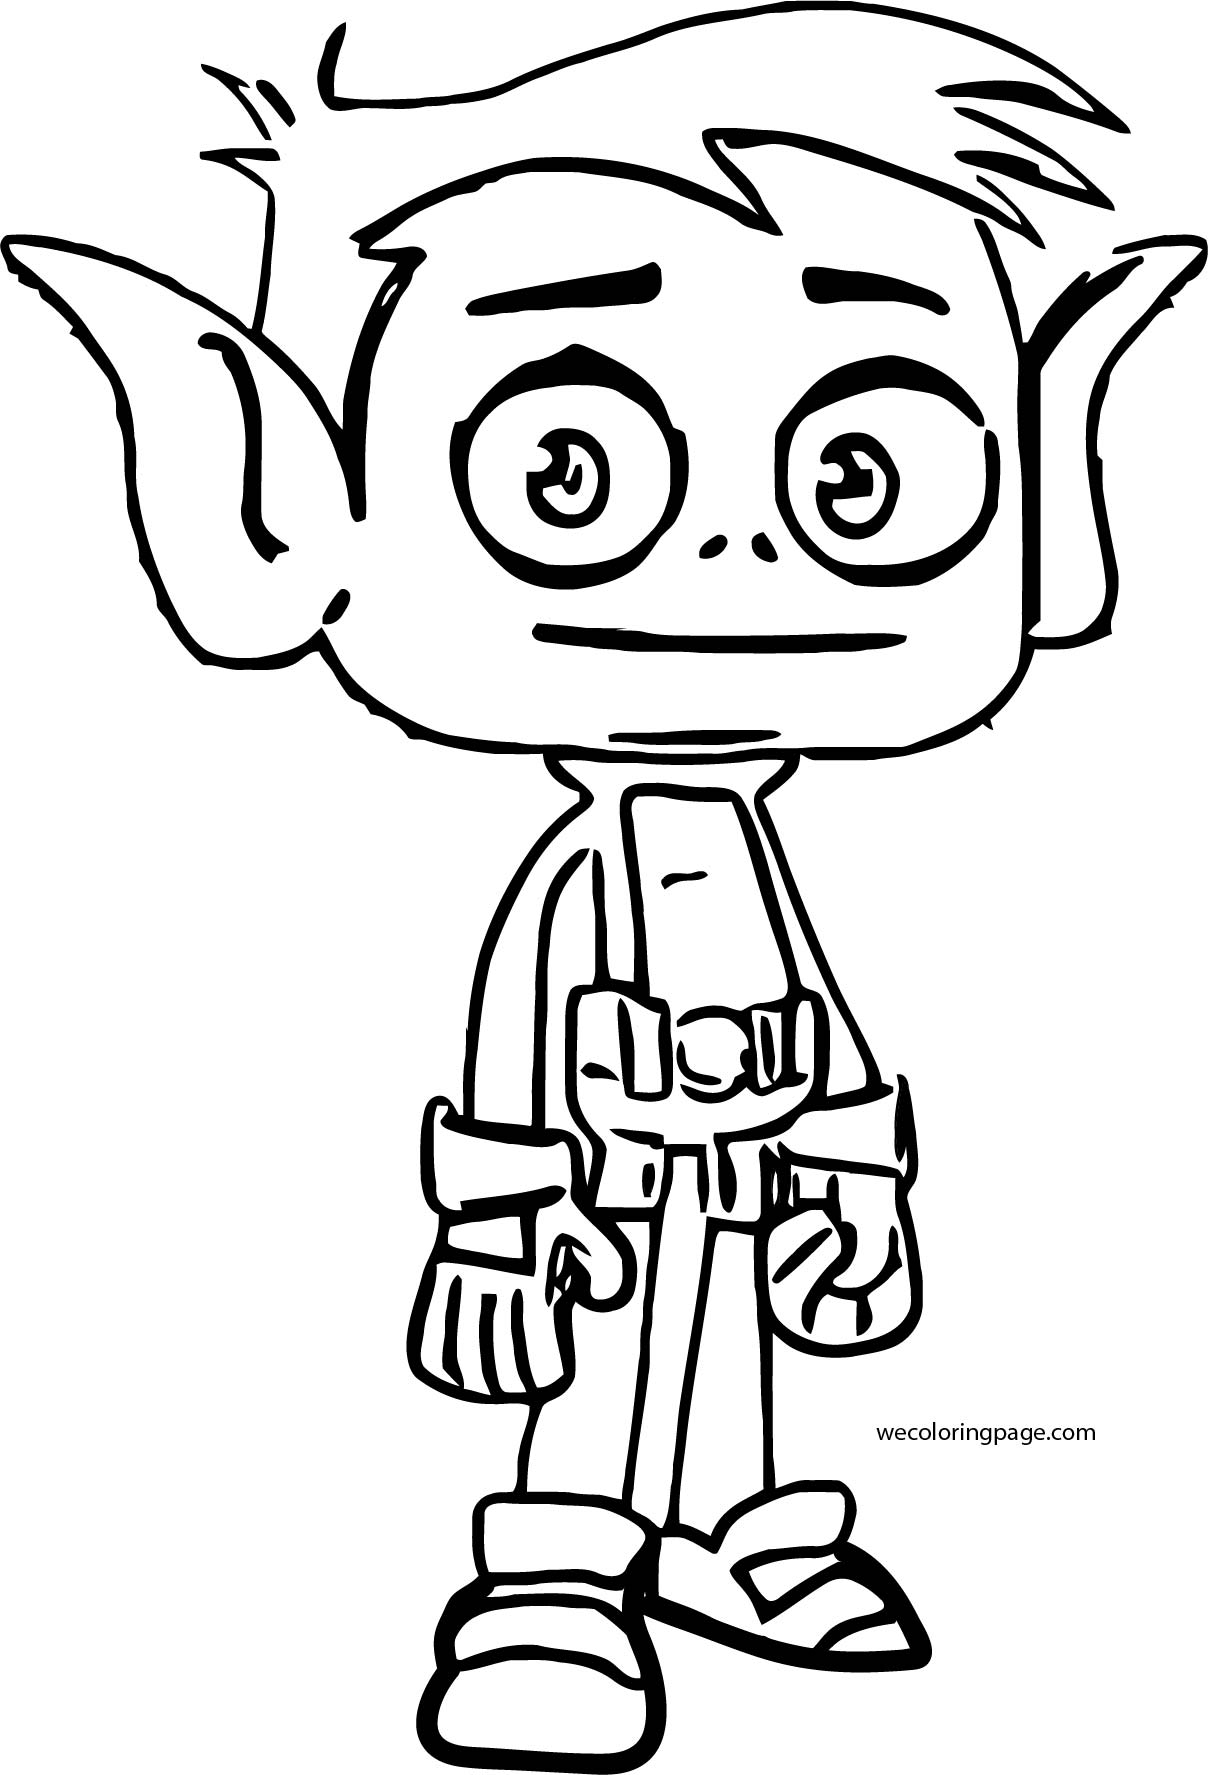 How To Draw Beast Boy From Teen